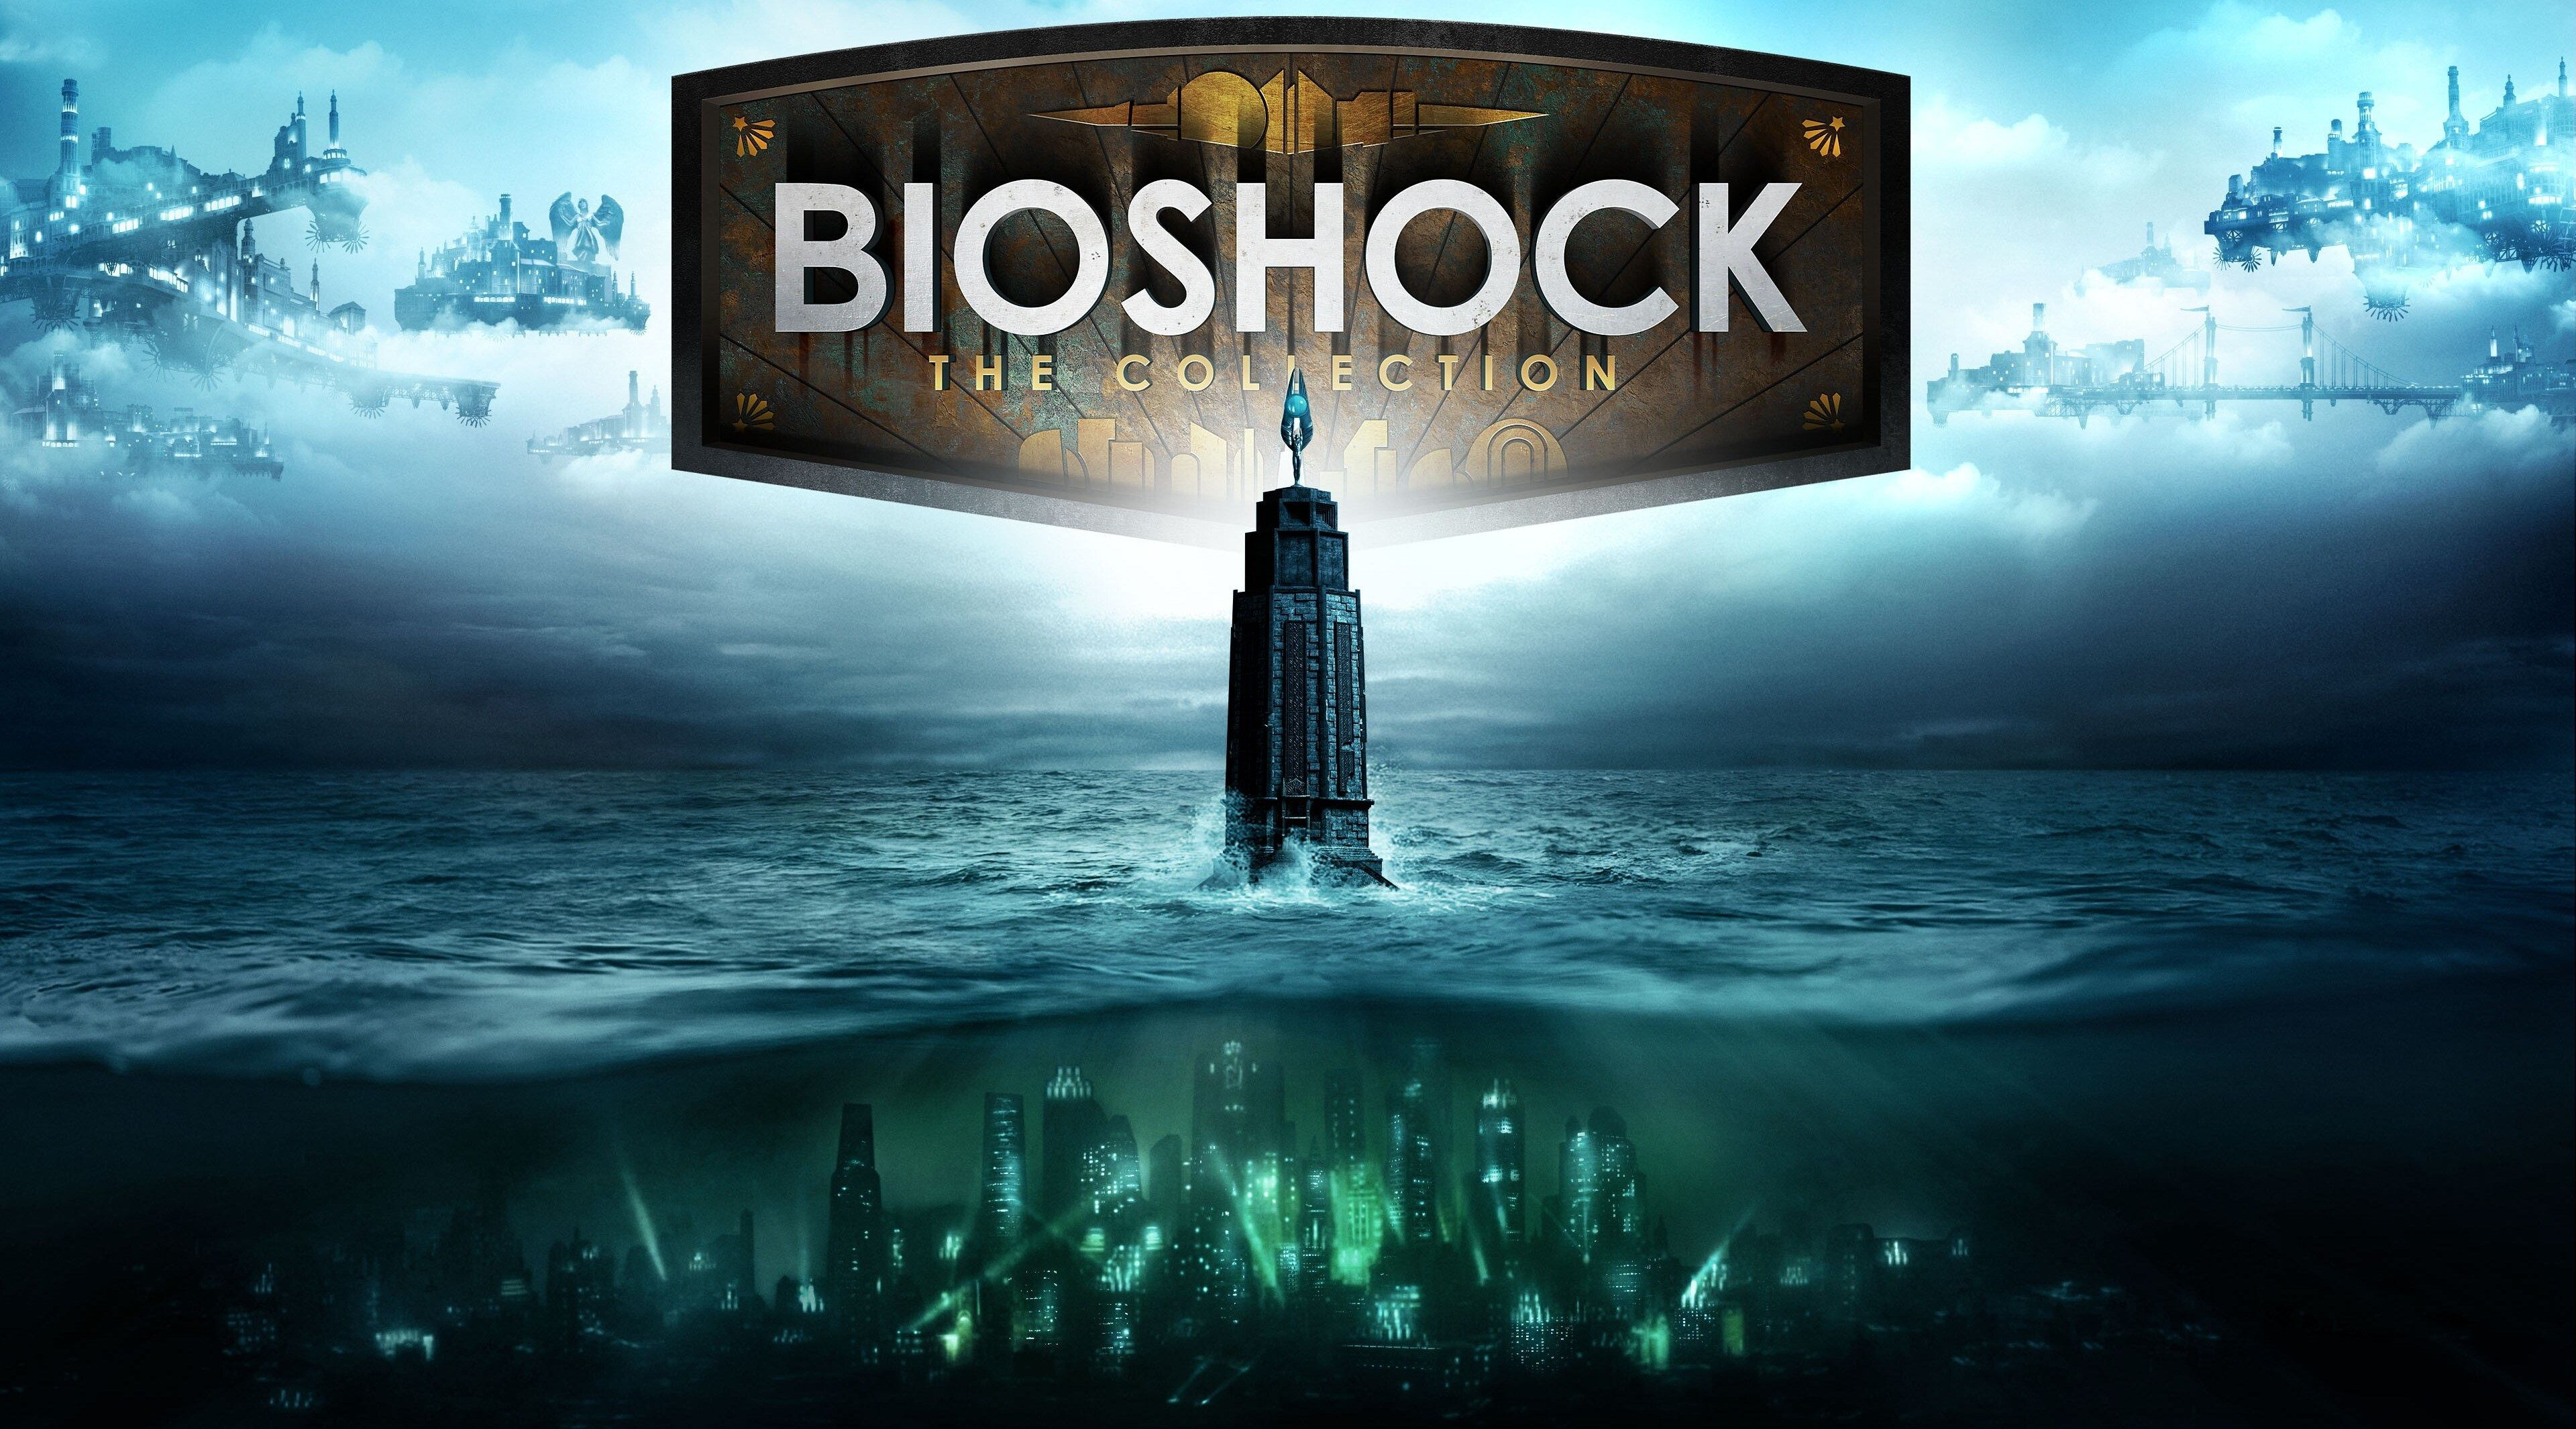 3840x2130 Bioshock The Collection 4k Wallpaper For Hd Desktop Bioshock Bioshock Collection Bioshock Remastered